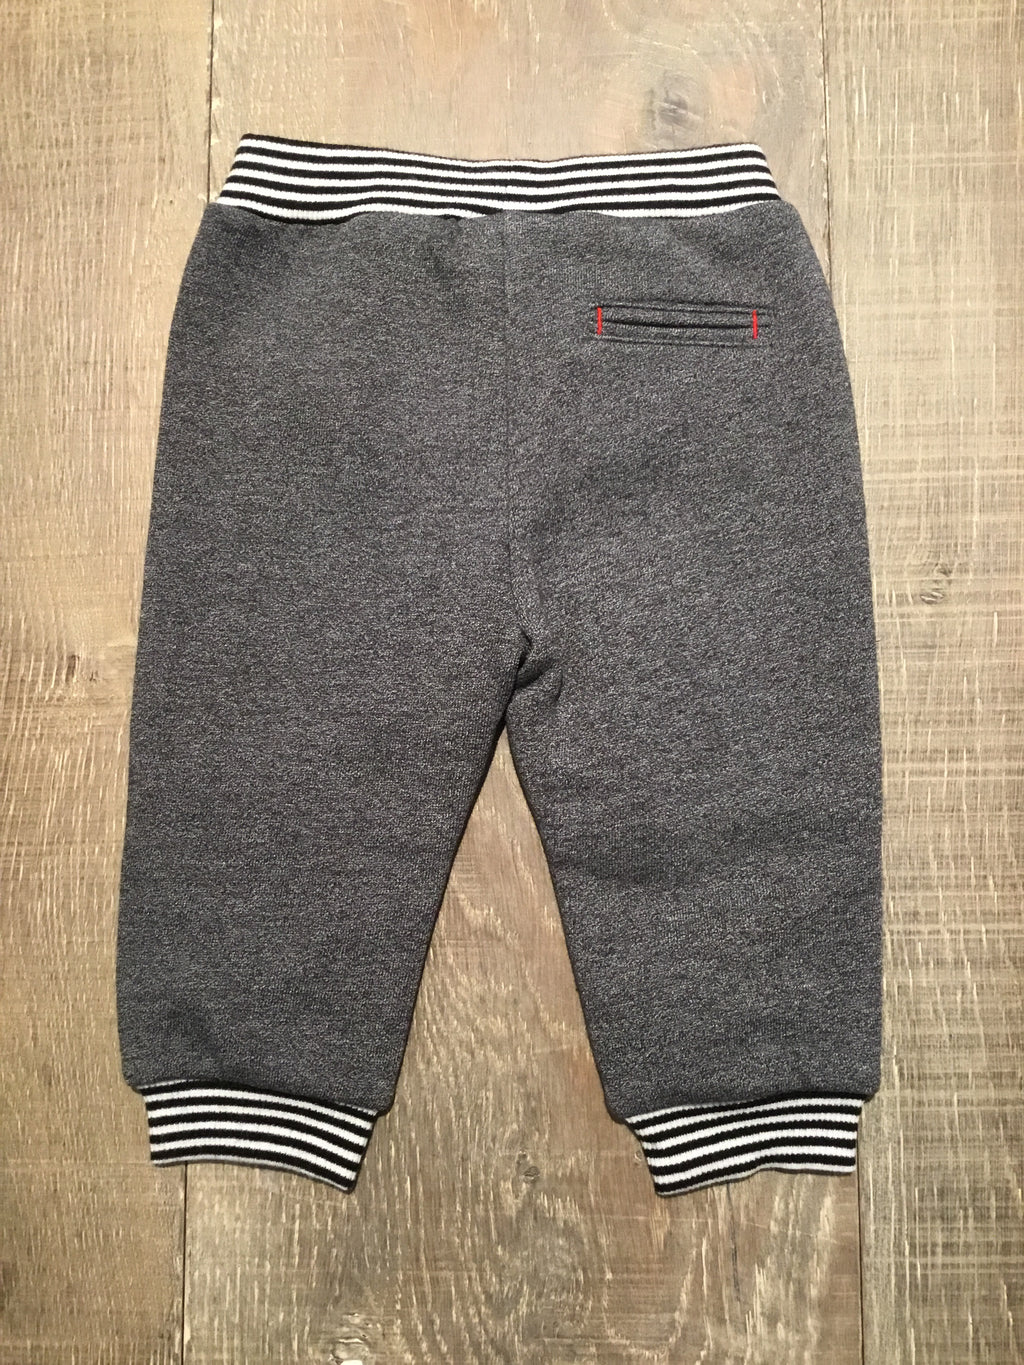 Black and White Cuffed Grey Trousers